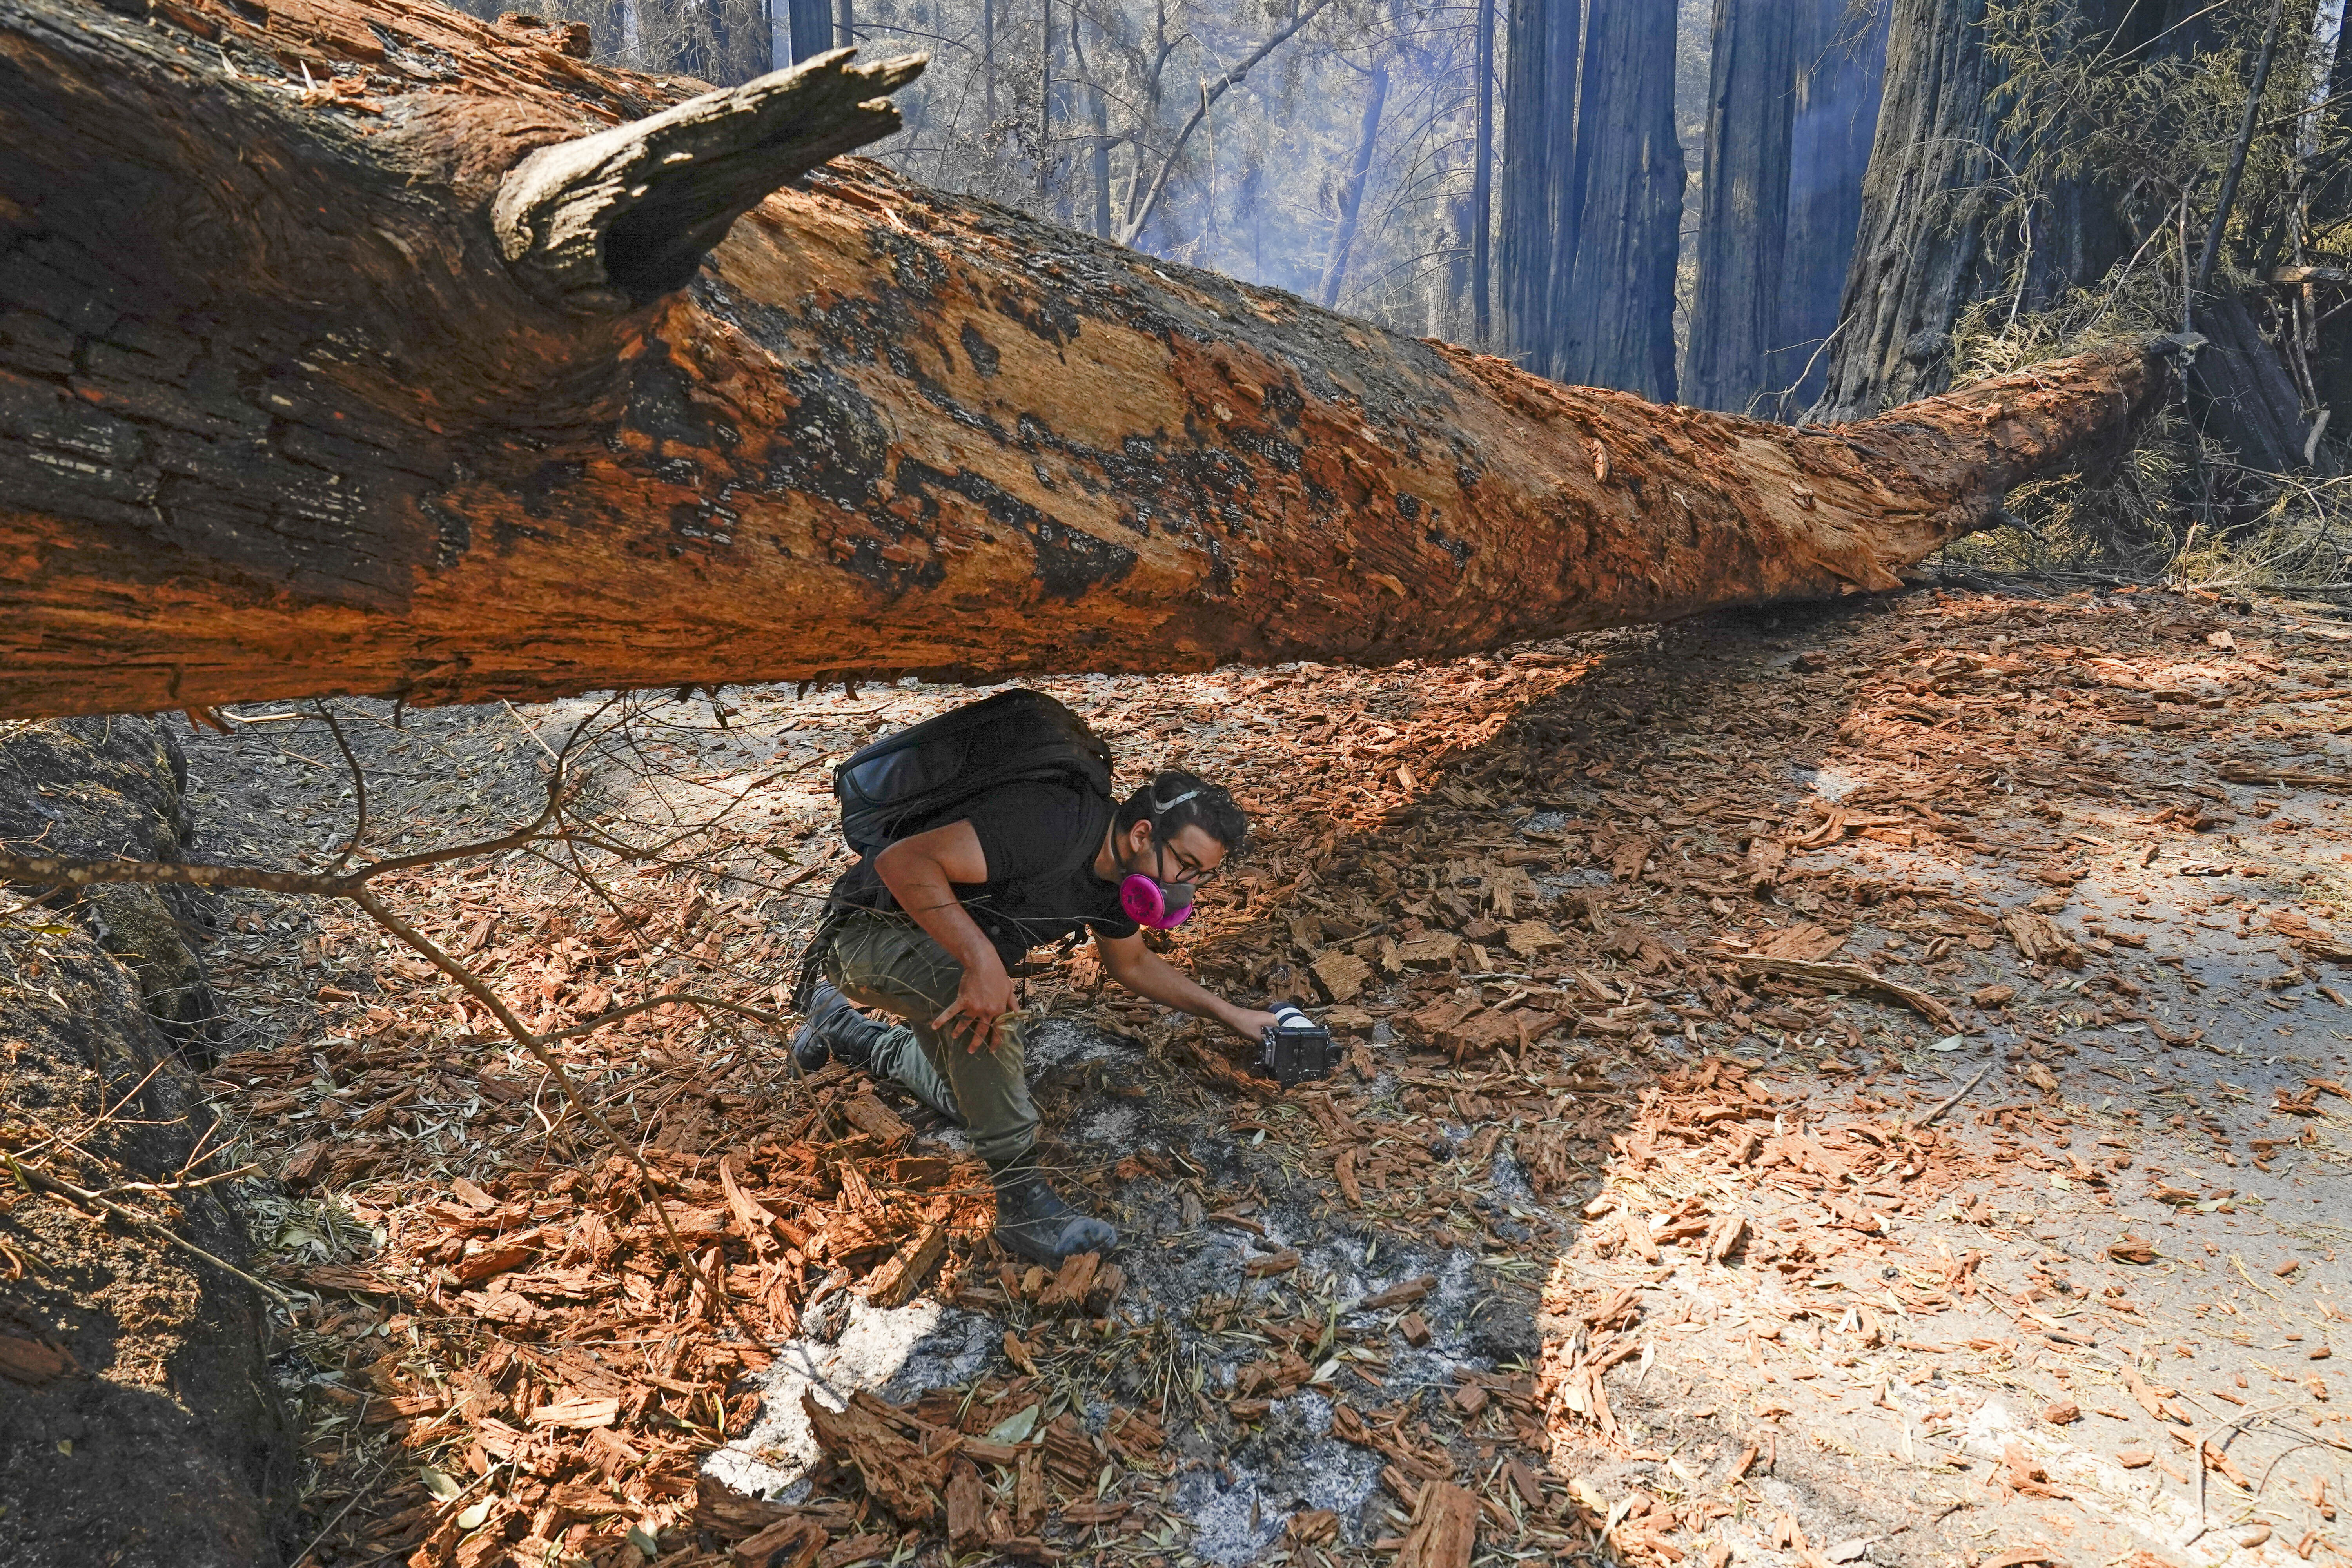 Independent journalist Eric Ananmalay crosses under a fallen tree Monday, Aug. 24, 2020, in Big Basin Redwoods State Park, Calif. The CZU Lightning Complex wildfire tore through the park but most of the redwoods, some as old as 2,000 years, were still standing. (AP Photo/Marcio Jose Sanchez)